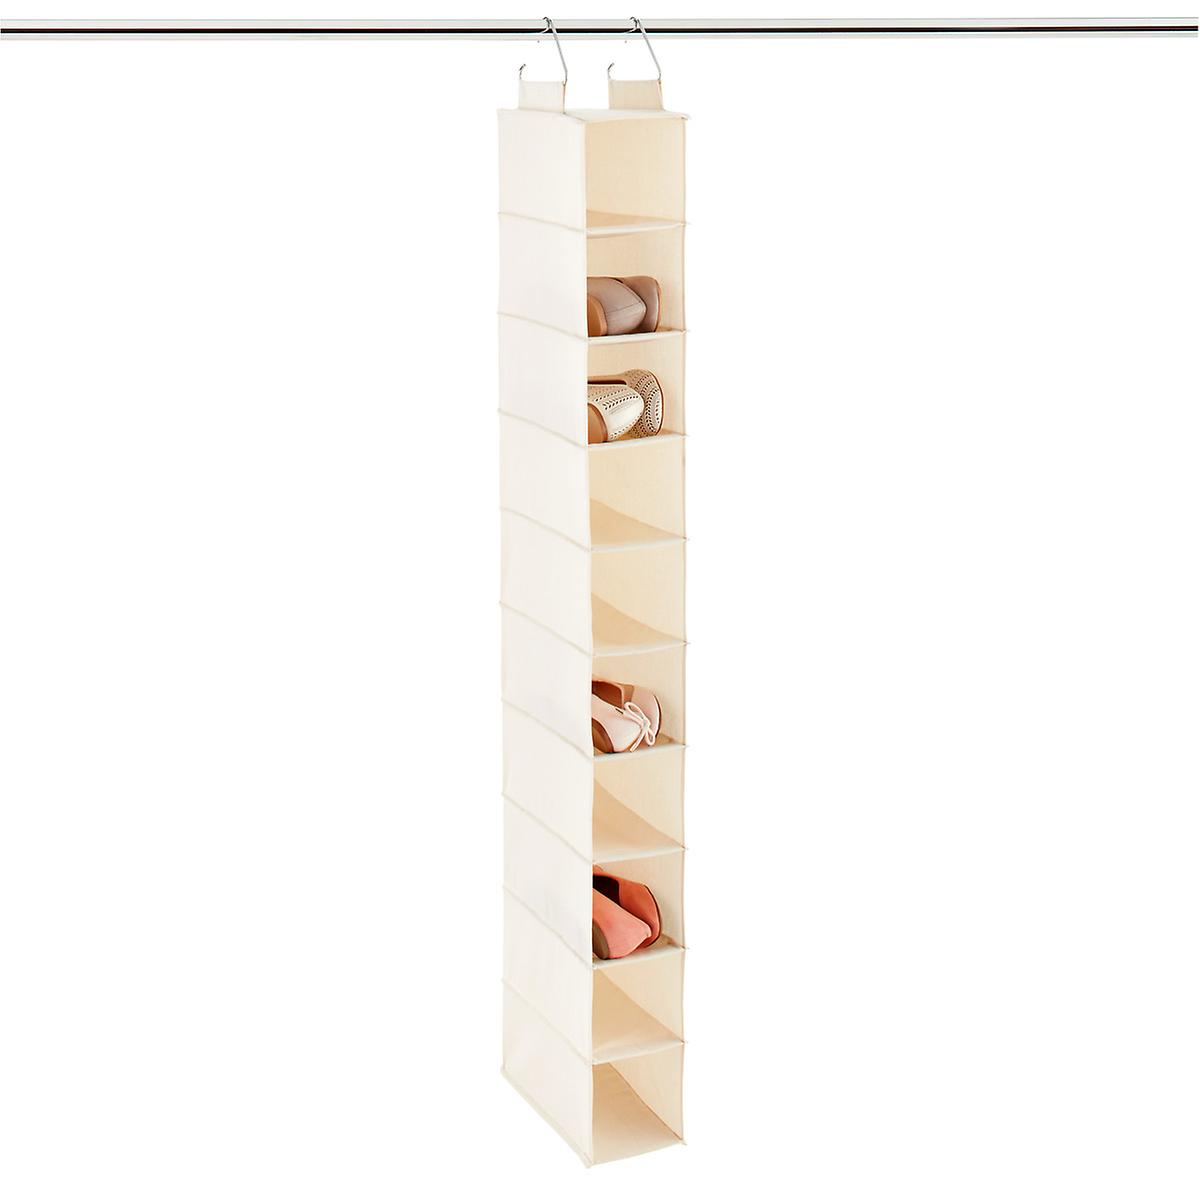 10 Compartment Natural Canvas Hanging Shoe Organizer The